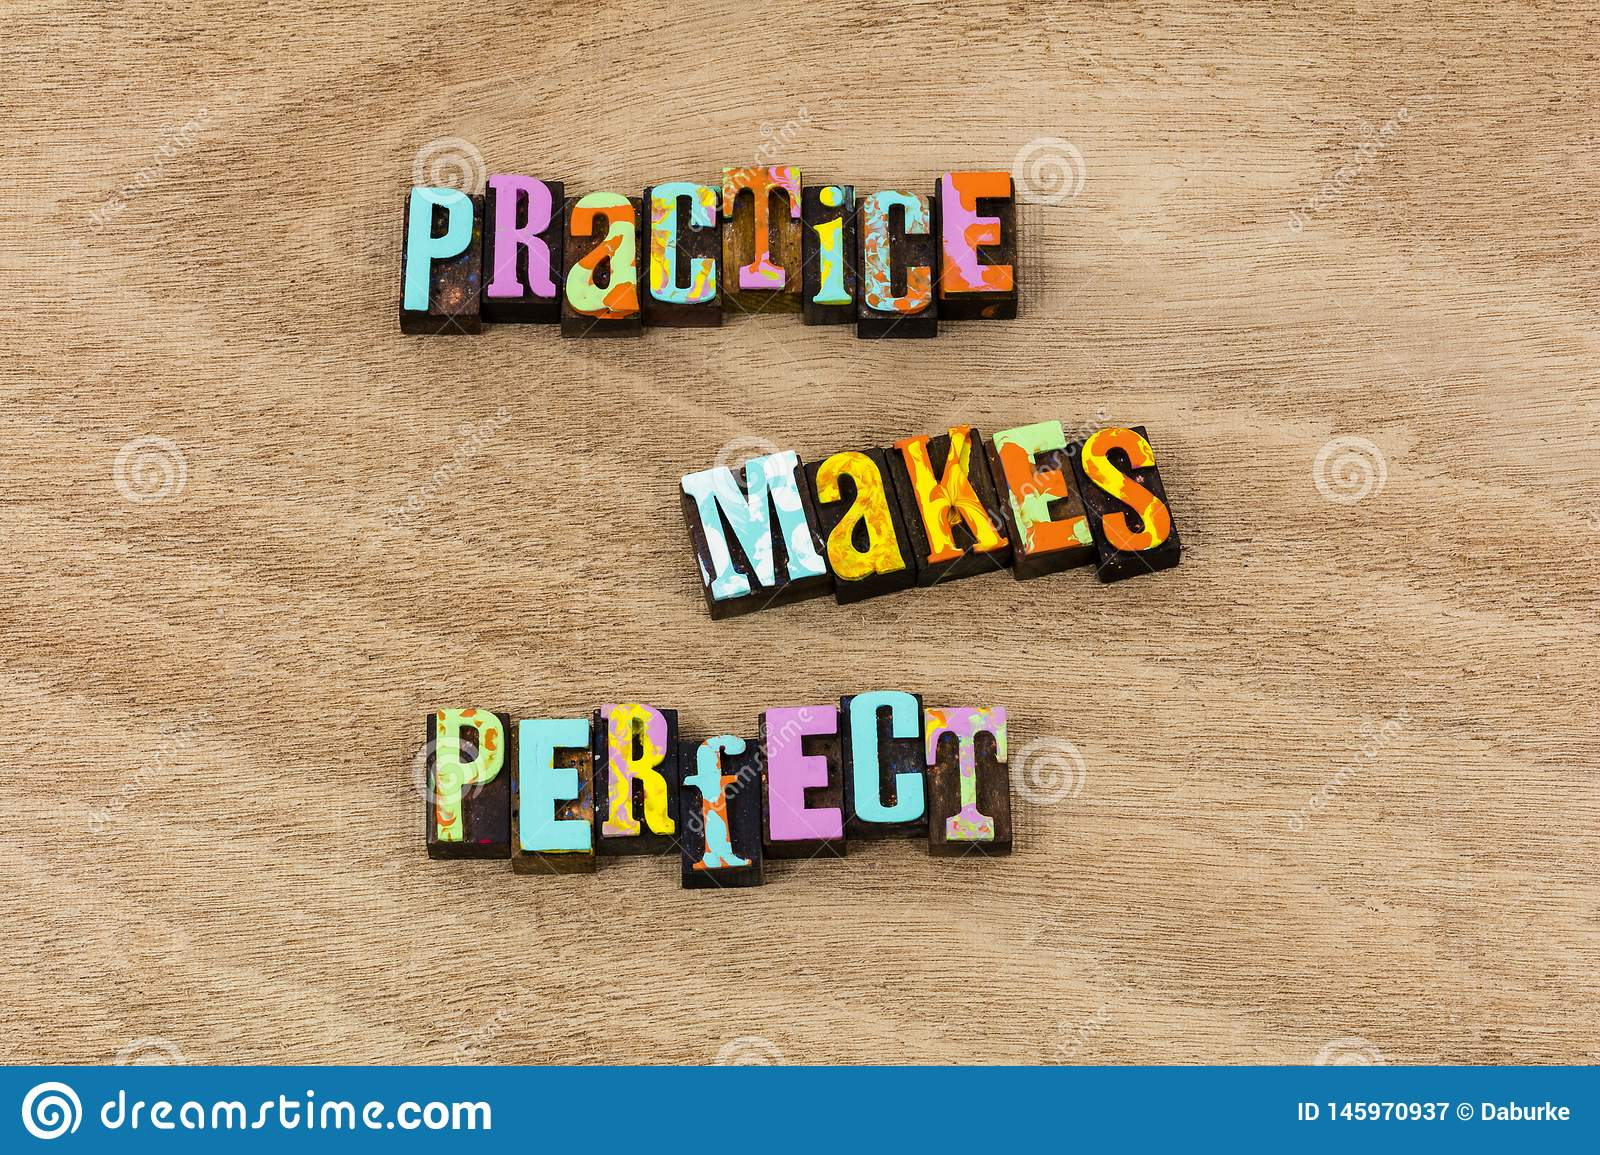 Practice makes perfect work hard repetition repeat believe